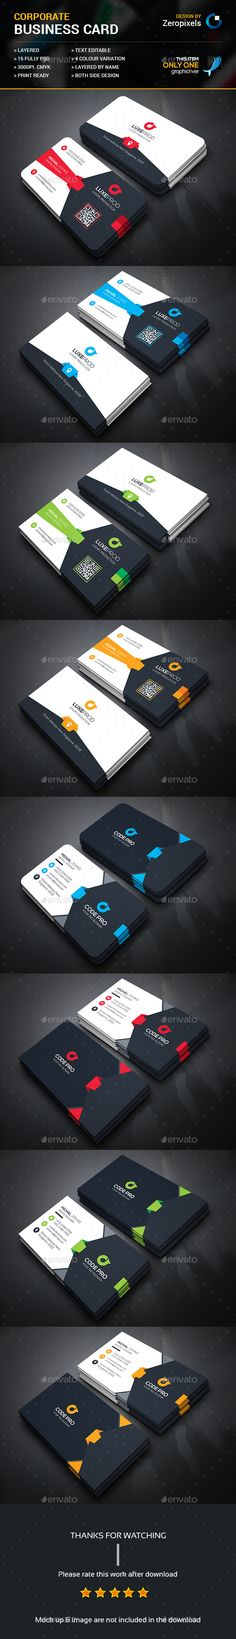 Modern Business Card Bundle - Business Card Template PSD. Download here: http://graphicriver.net/item/modern-business-card-bundle/16361096?ref=yinkira